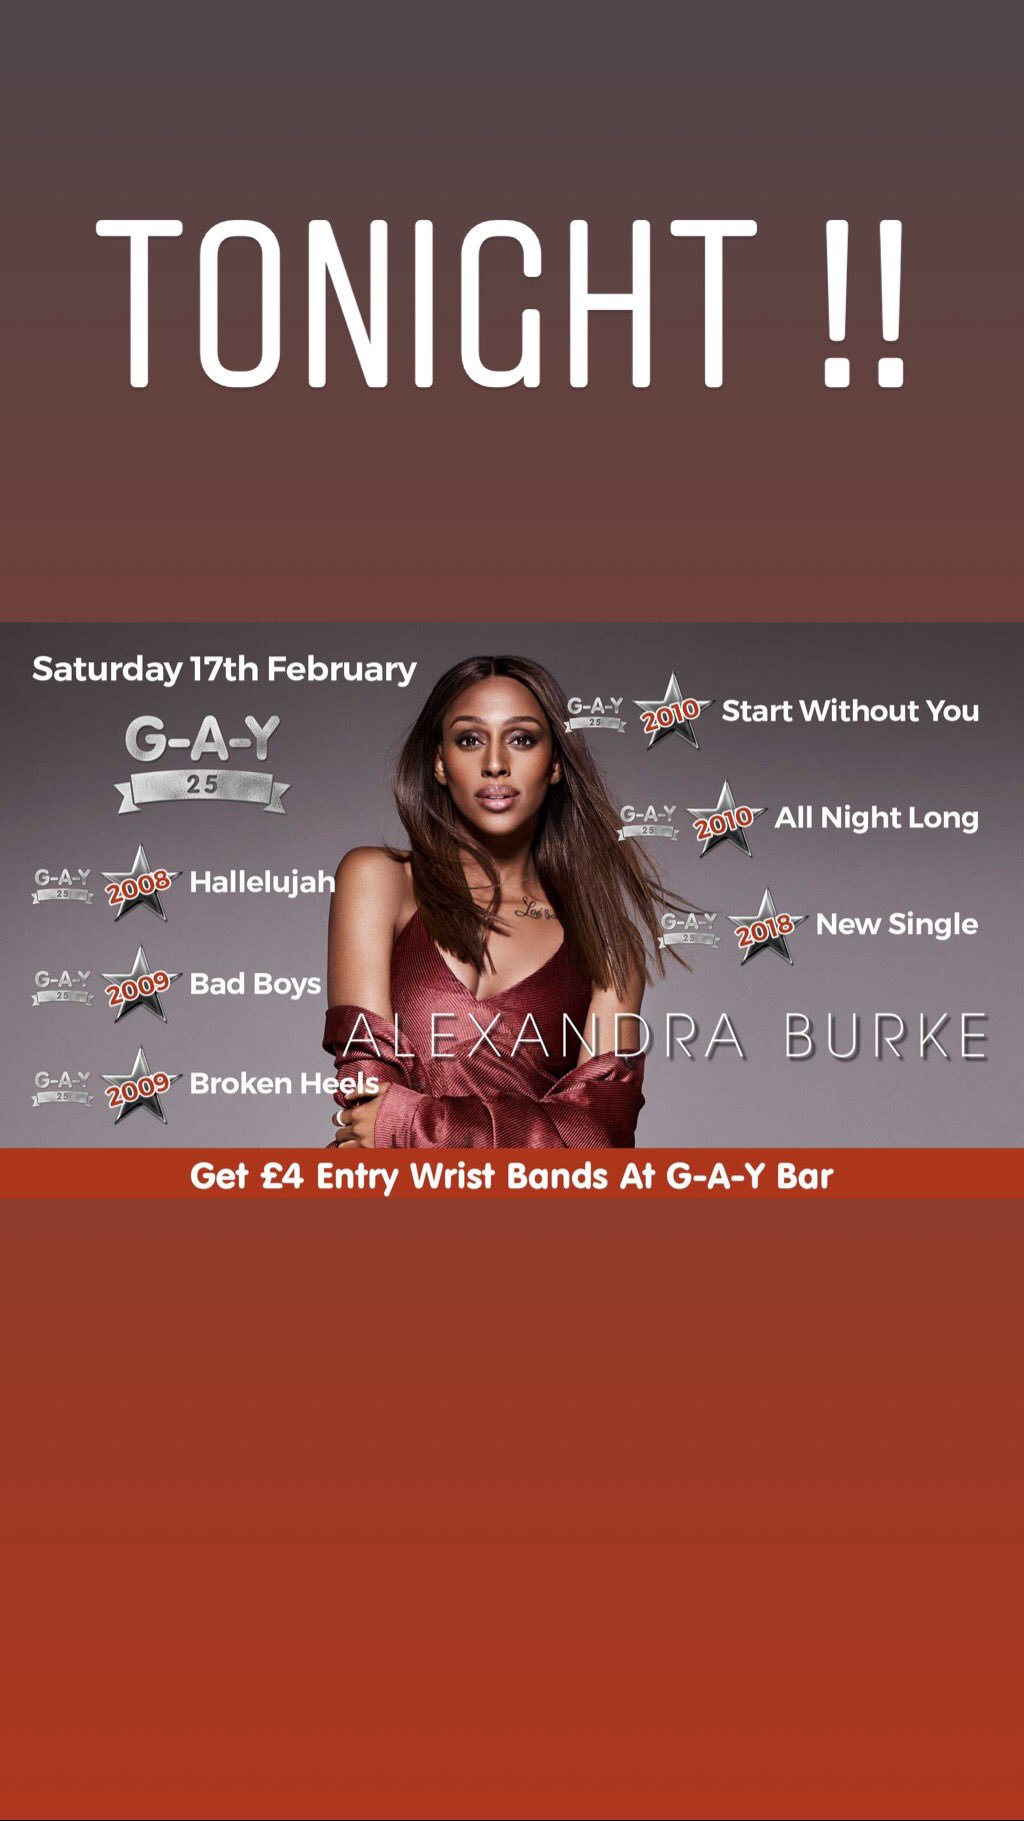 G.A.Y tonight ! I can't wait ! Who's coming x https://t.co/XSYJ0Oc3m2